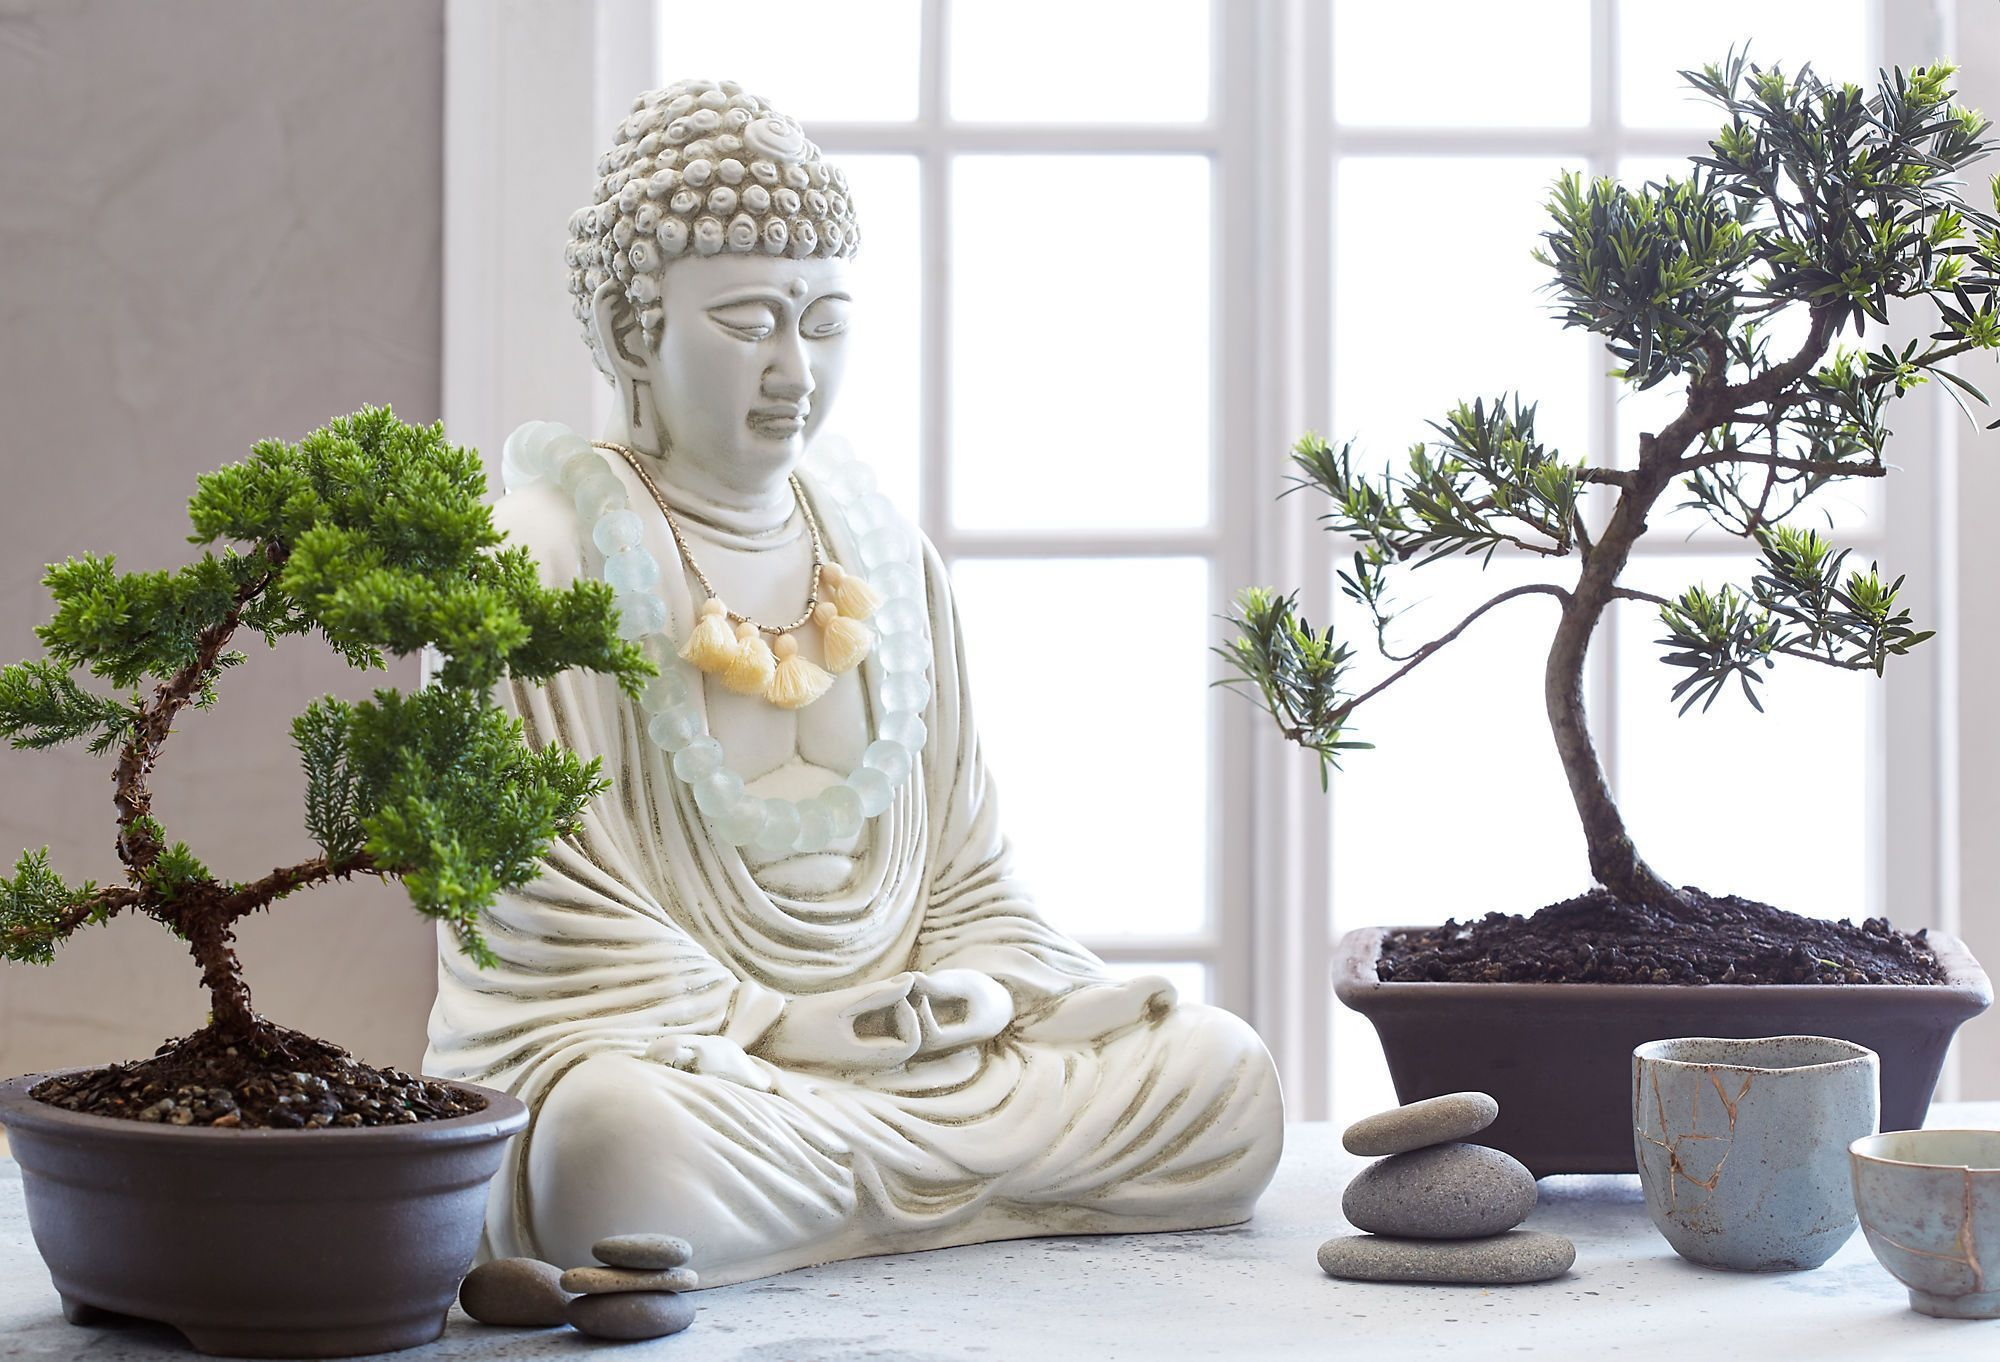 Serenity Now Zen Garden Finds for Indoors & Out decor